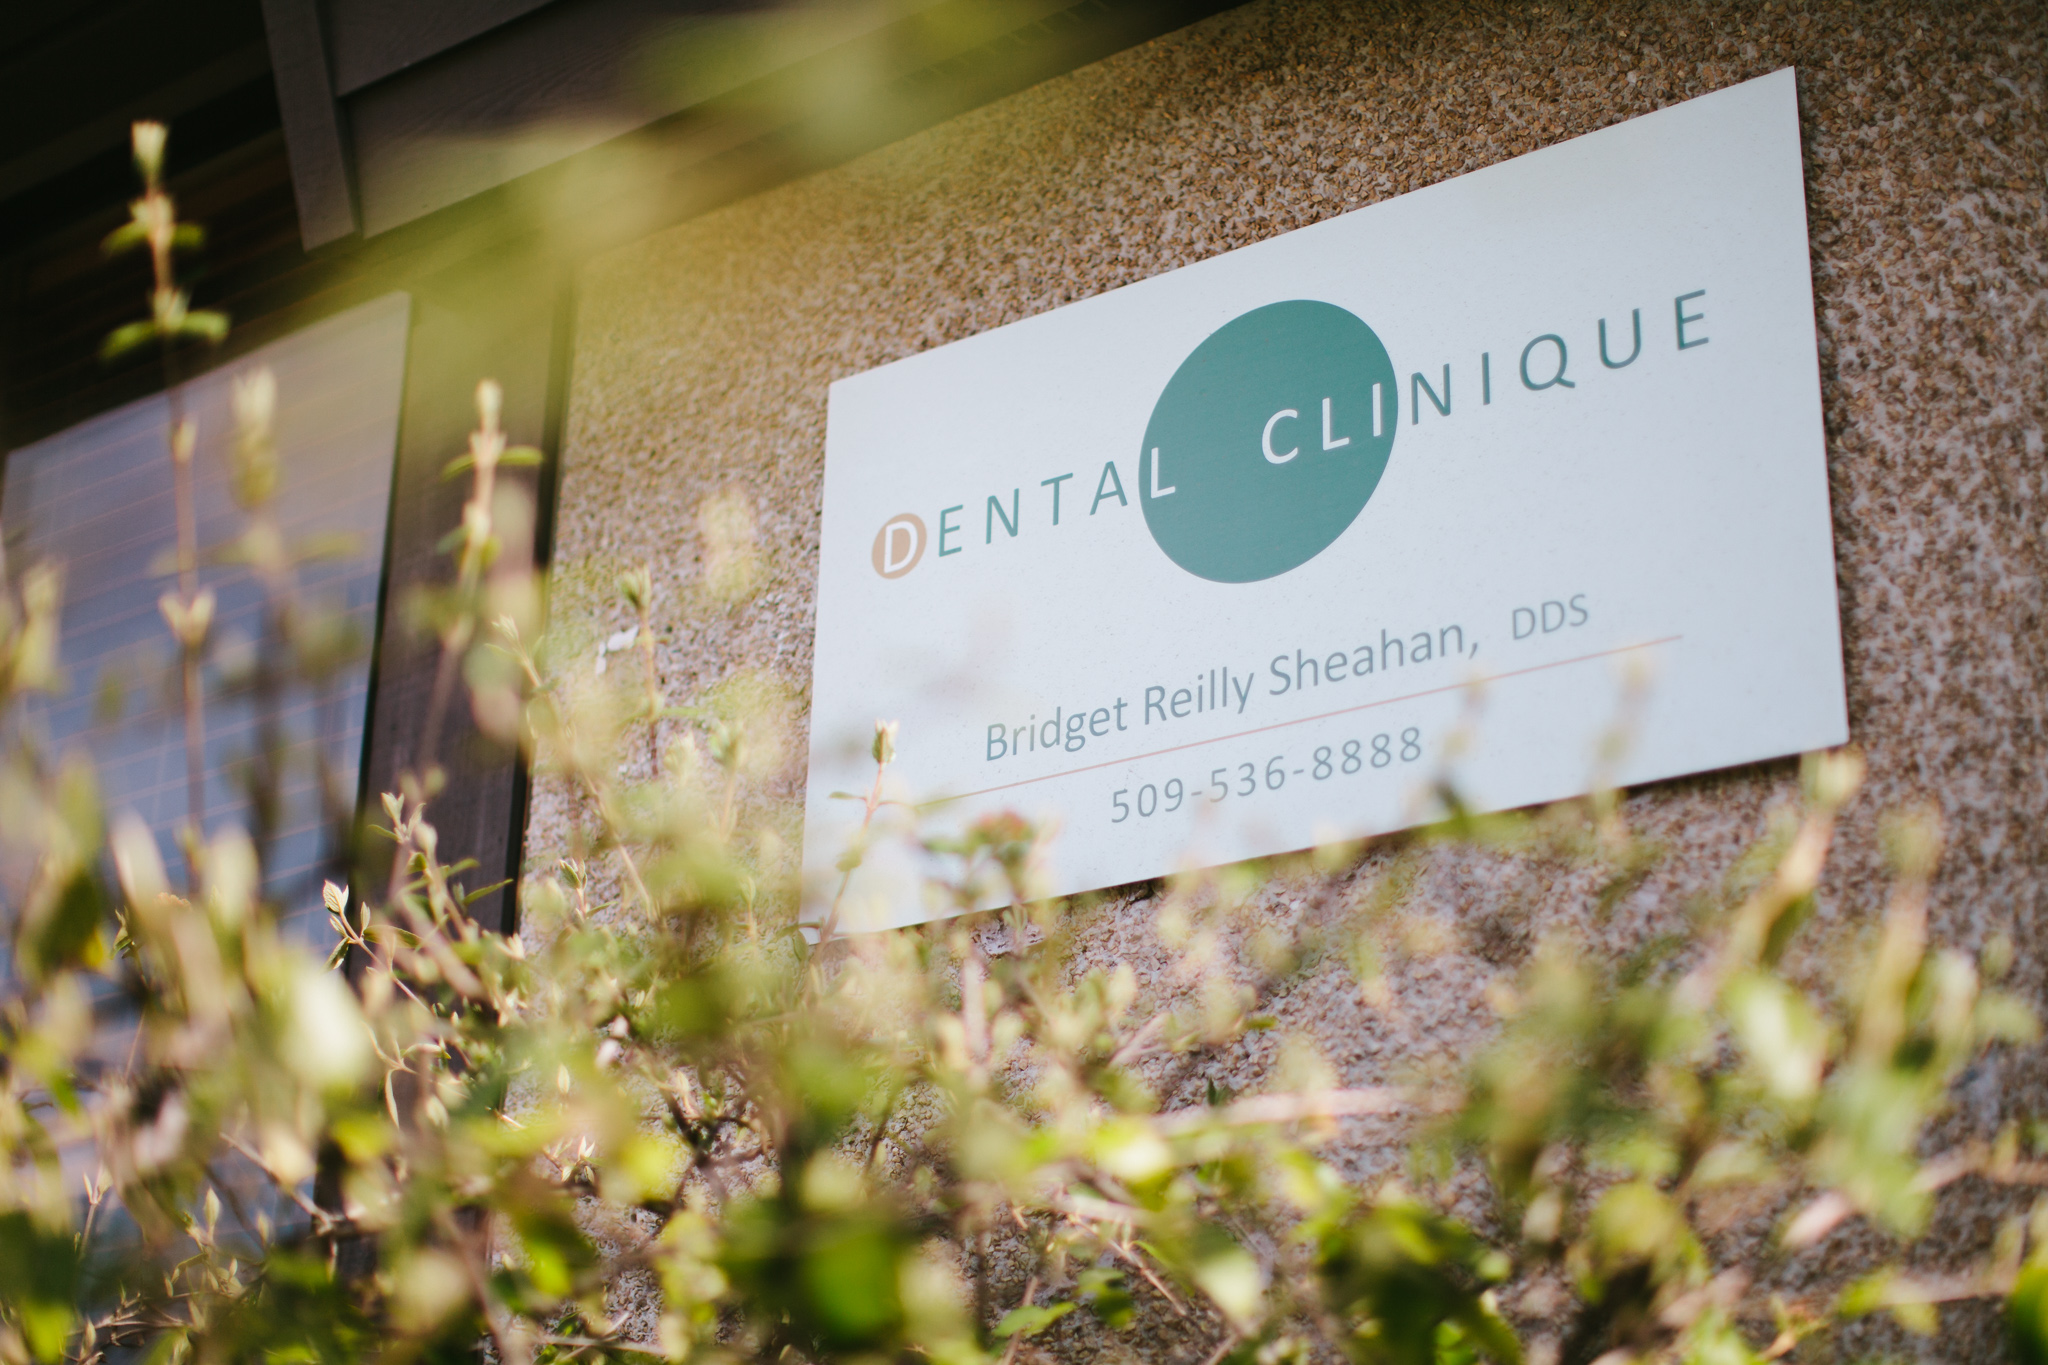 Dental Clinique Spokane Dental Office Doctor Bridget Reilly Sheahan Sign